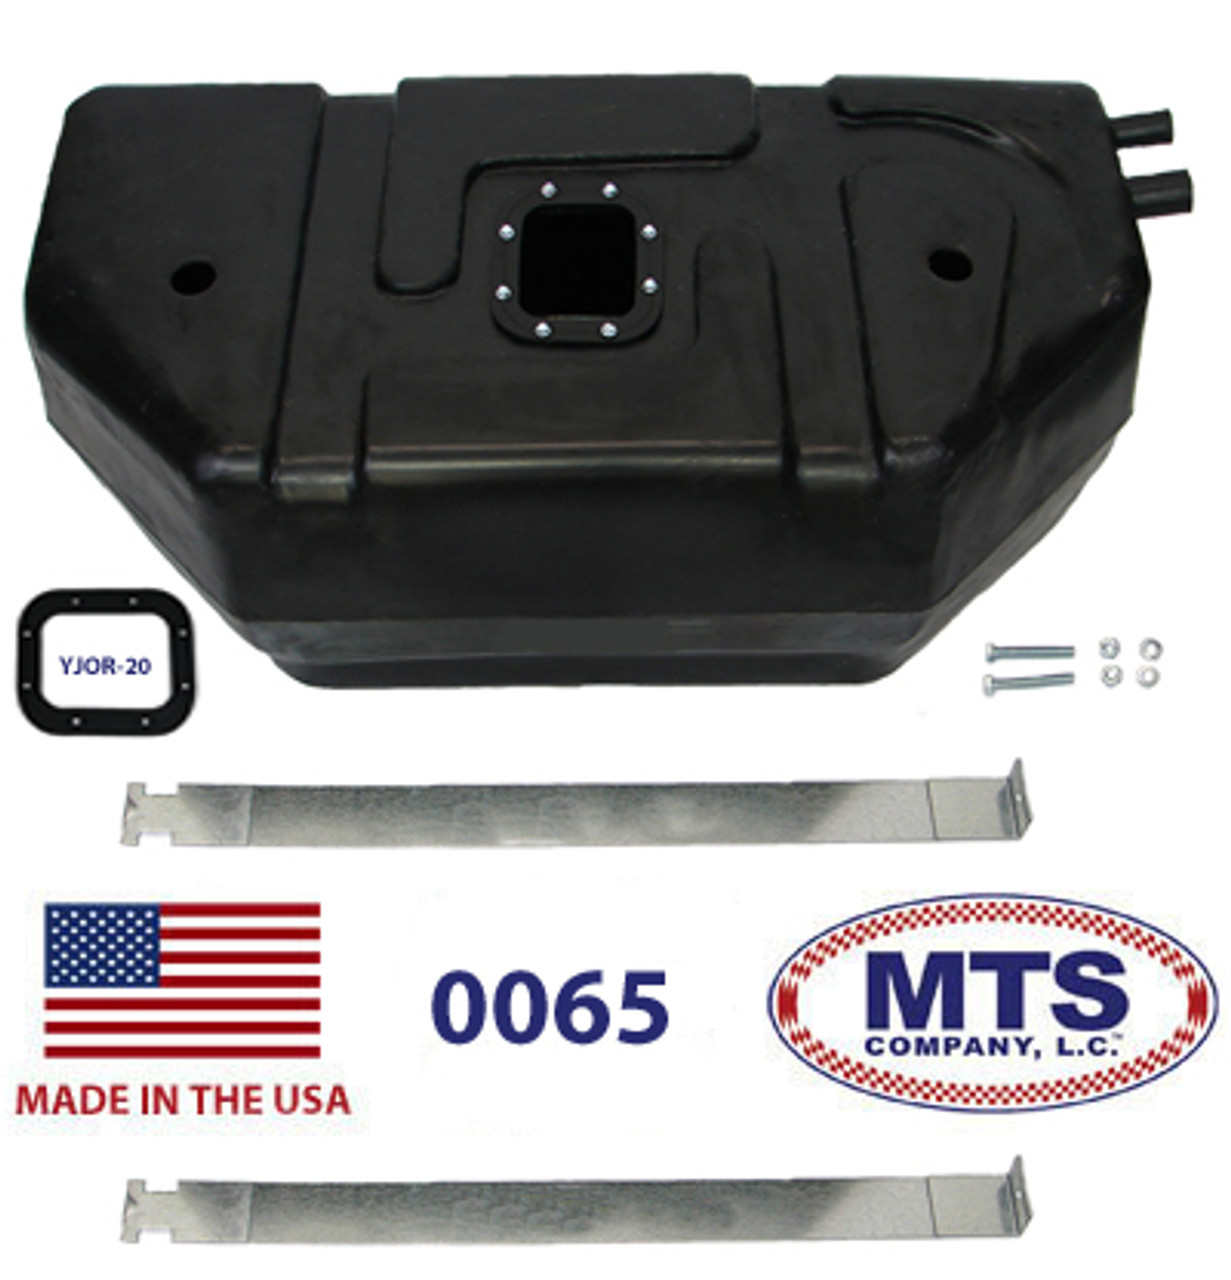 JEEP YJ WRANGLER 87-95 WITH 20 GALLON PLASTIC TANK FUEL FILLER AND VENT HOSE